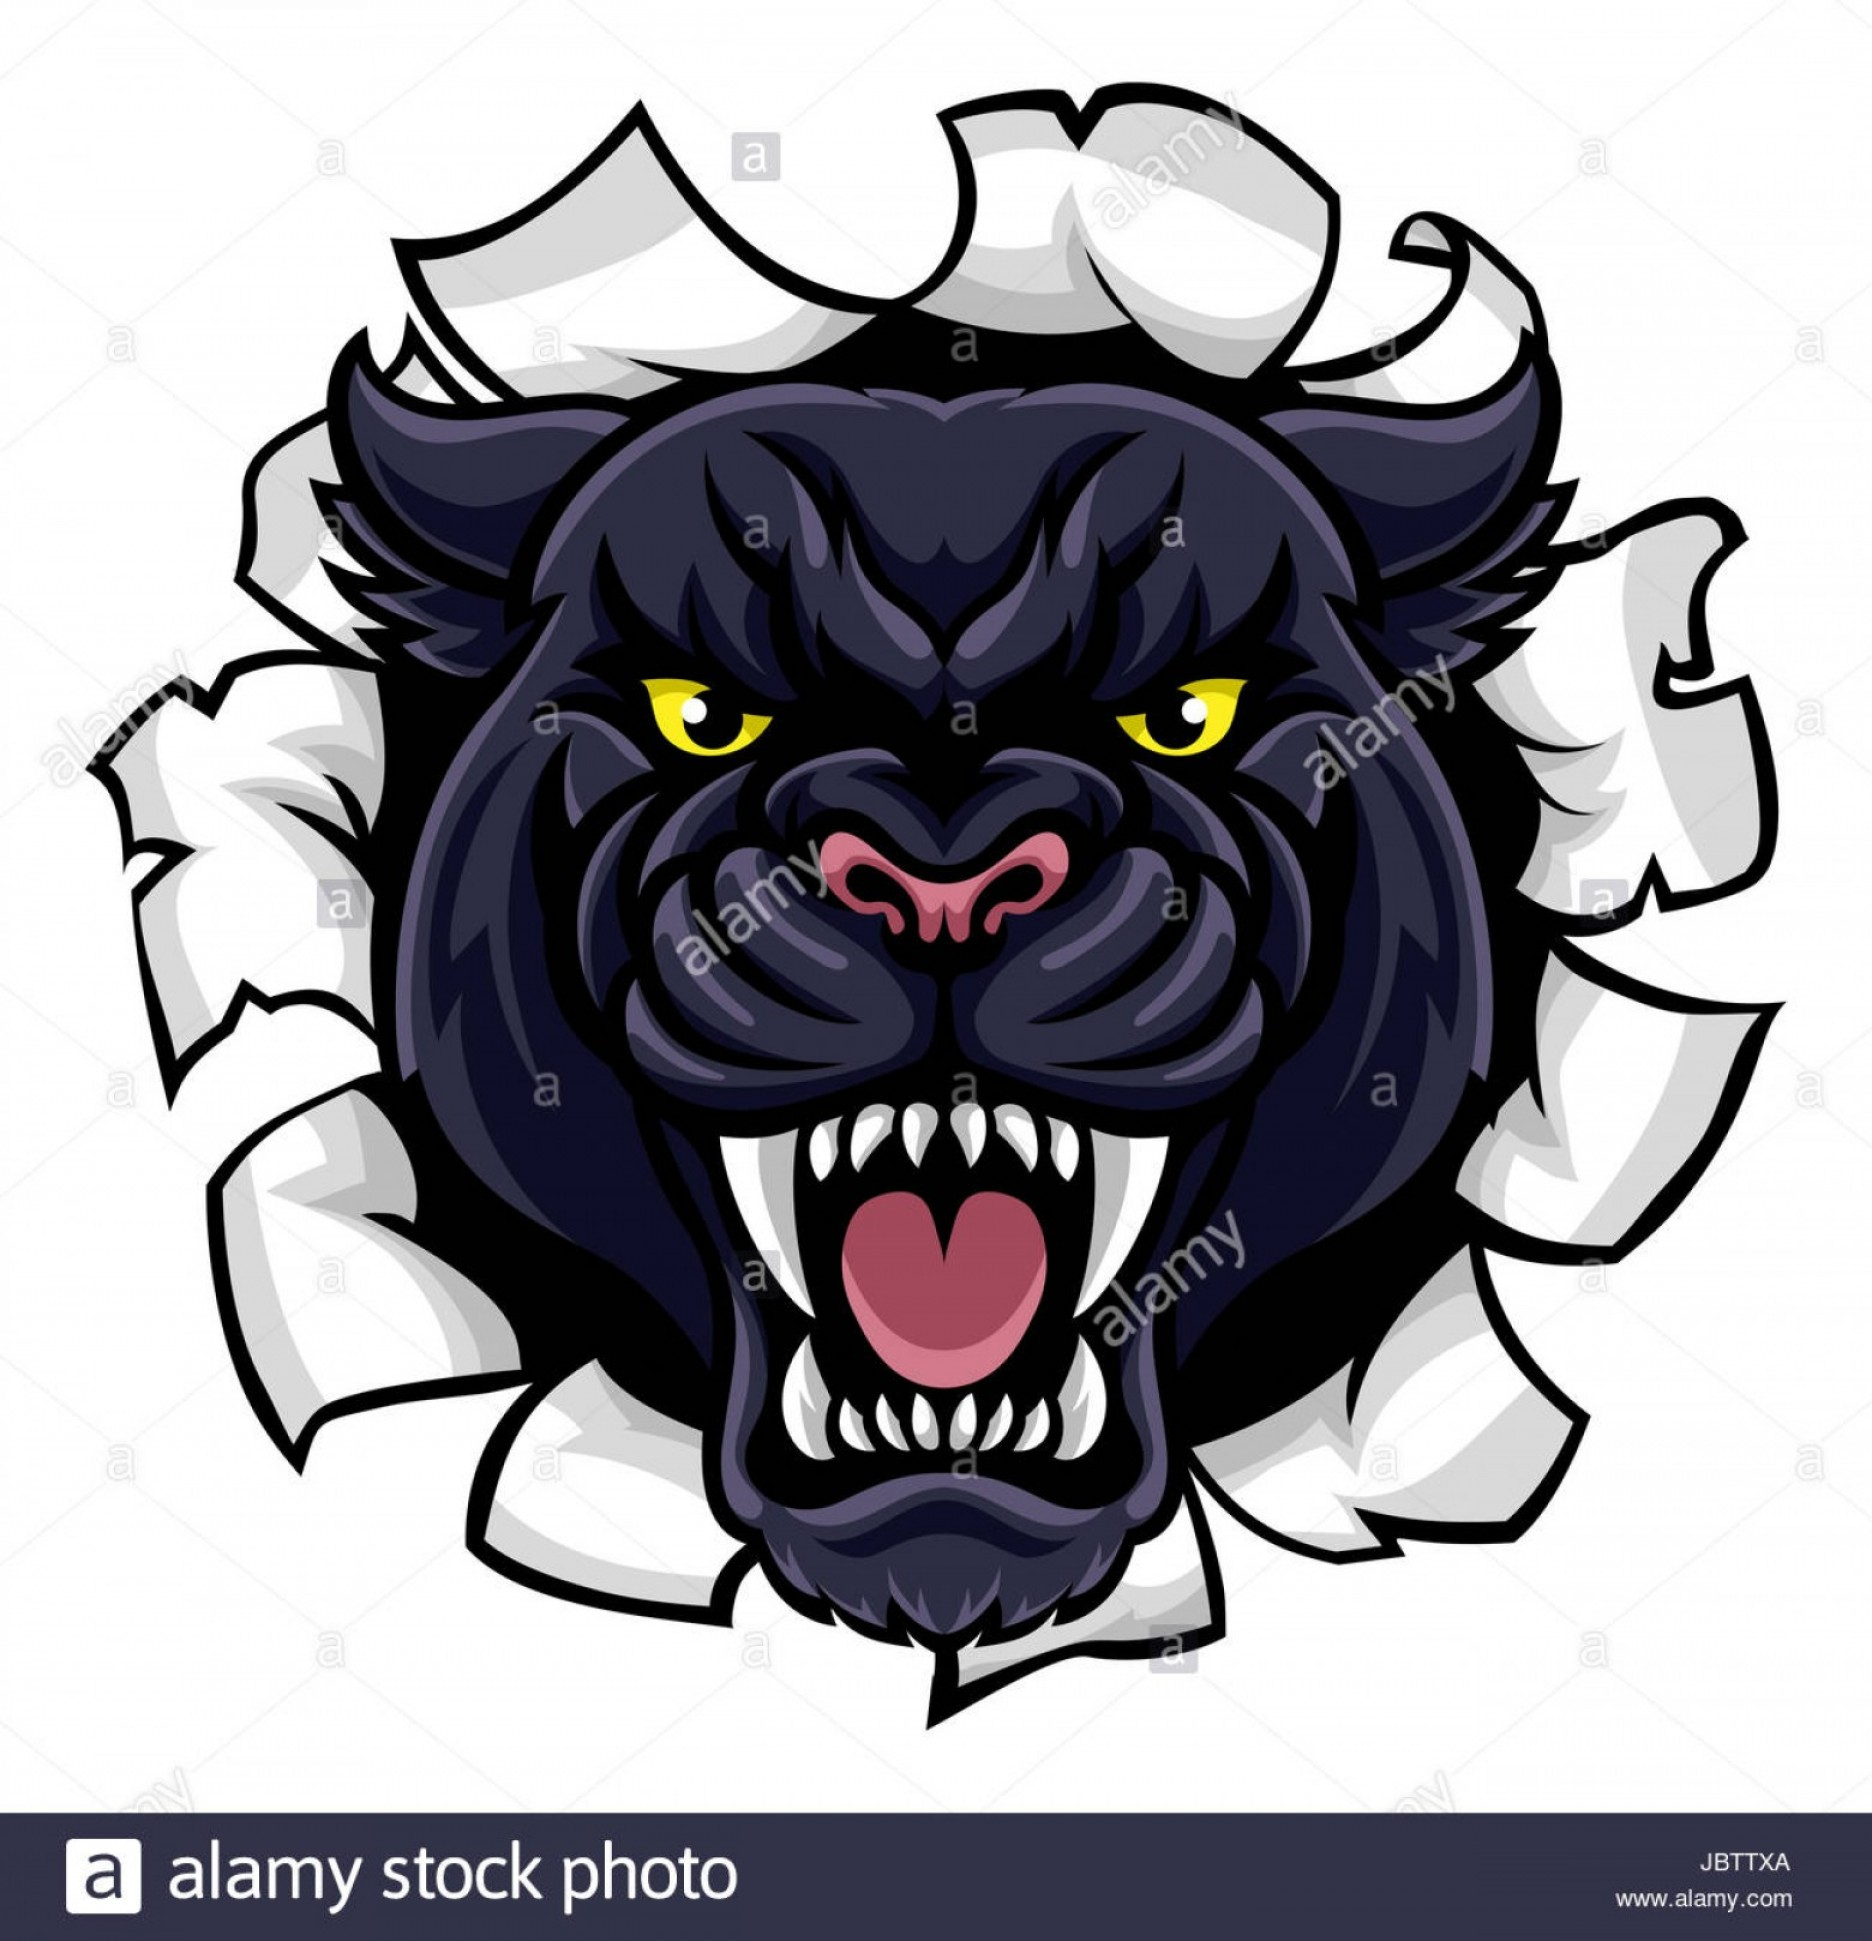 Panther Mascot Vector Sports: Stock Photo A Black Panther Angry Animal Sports Mascot Breaking Through The Background